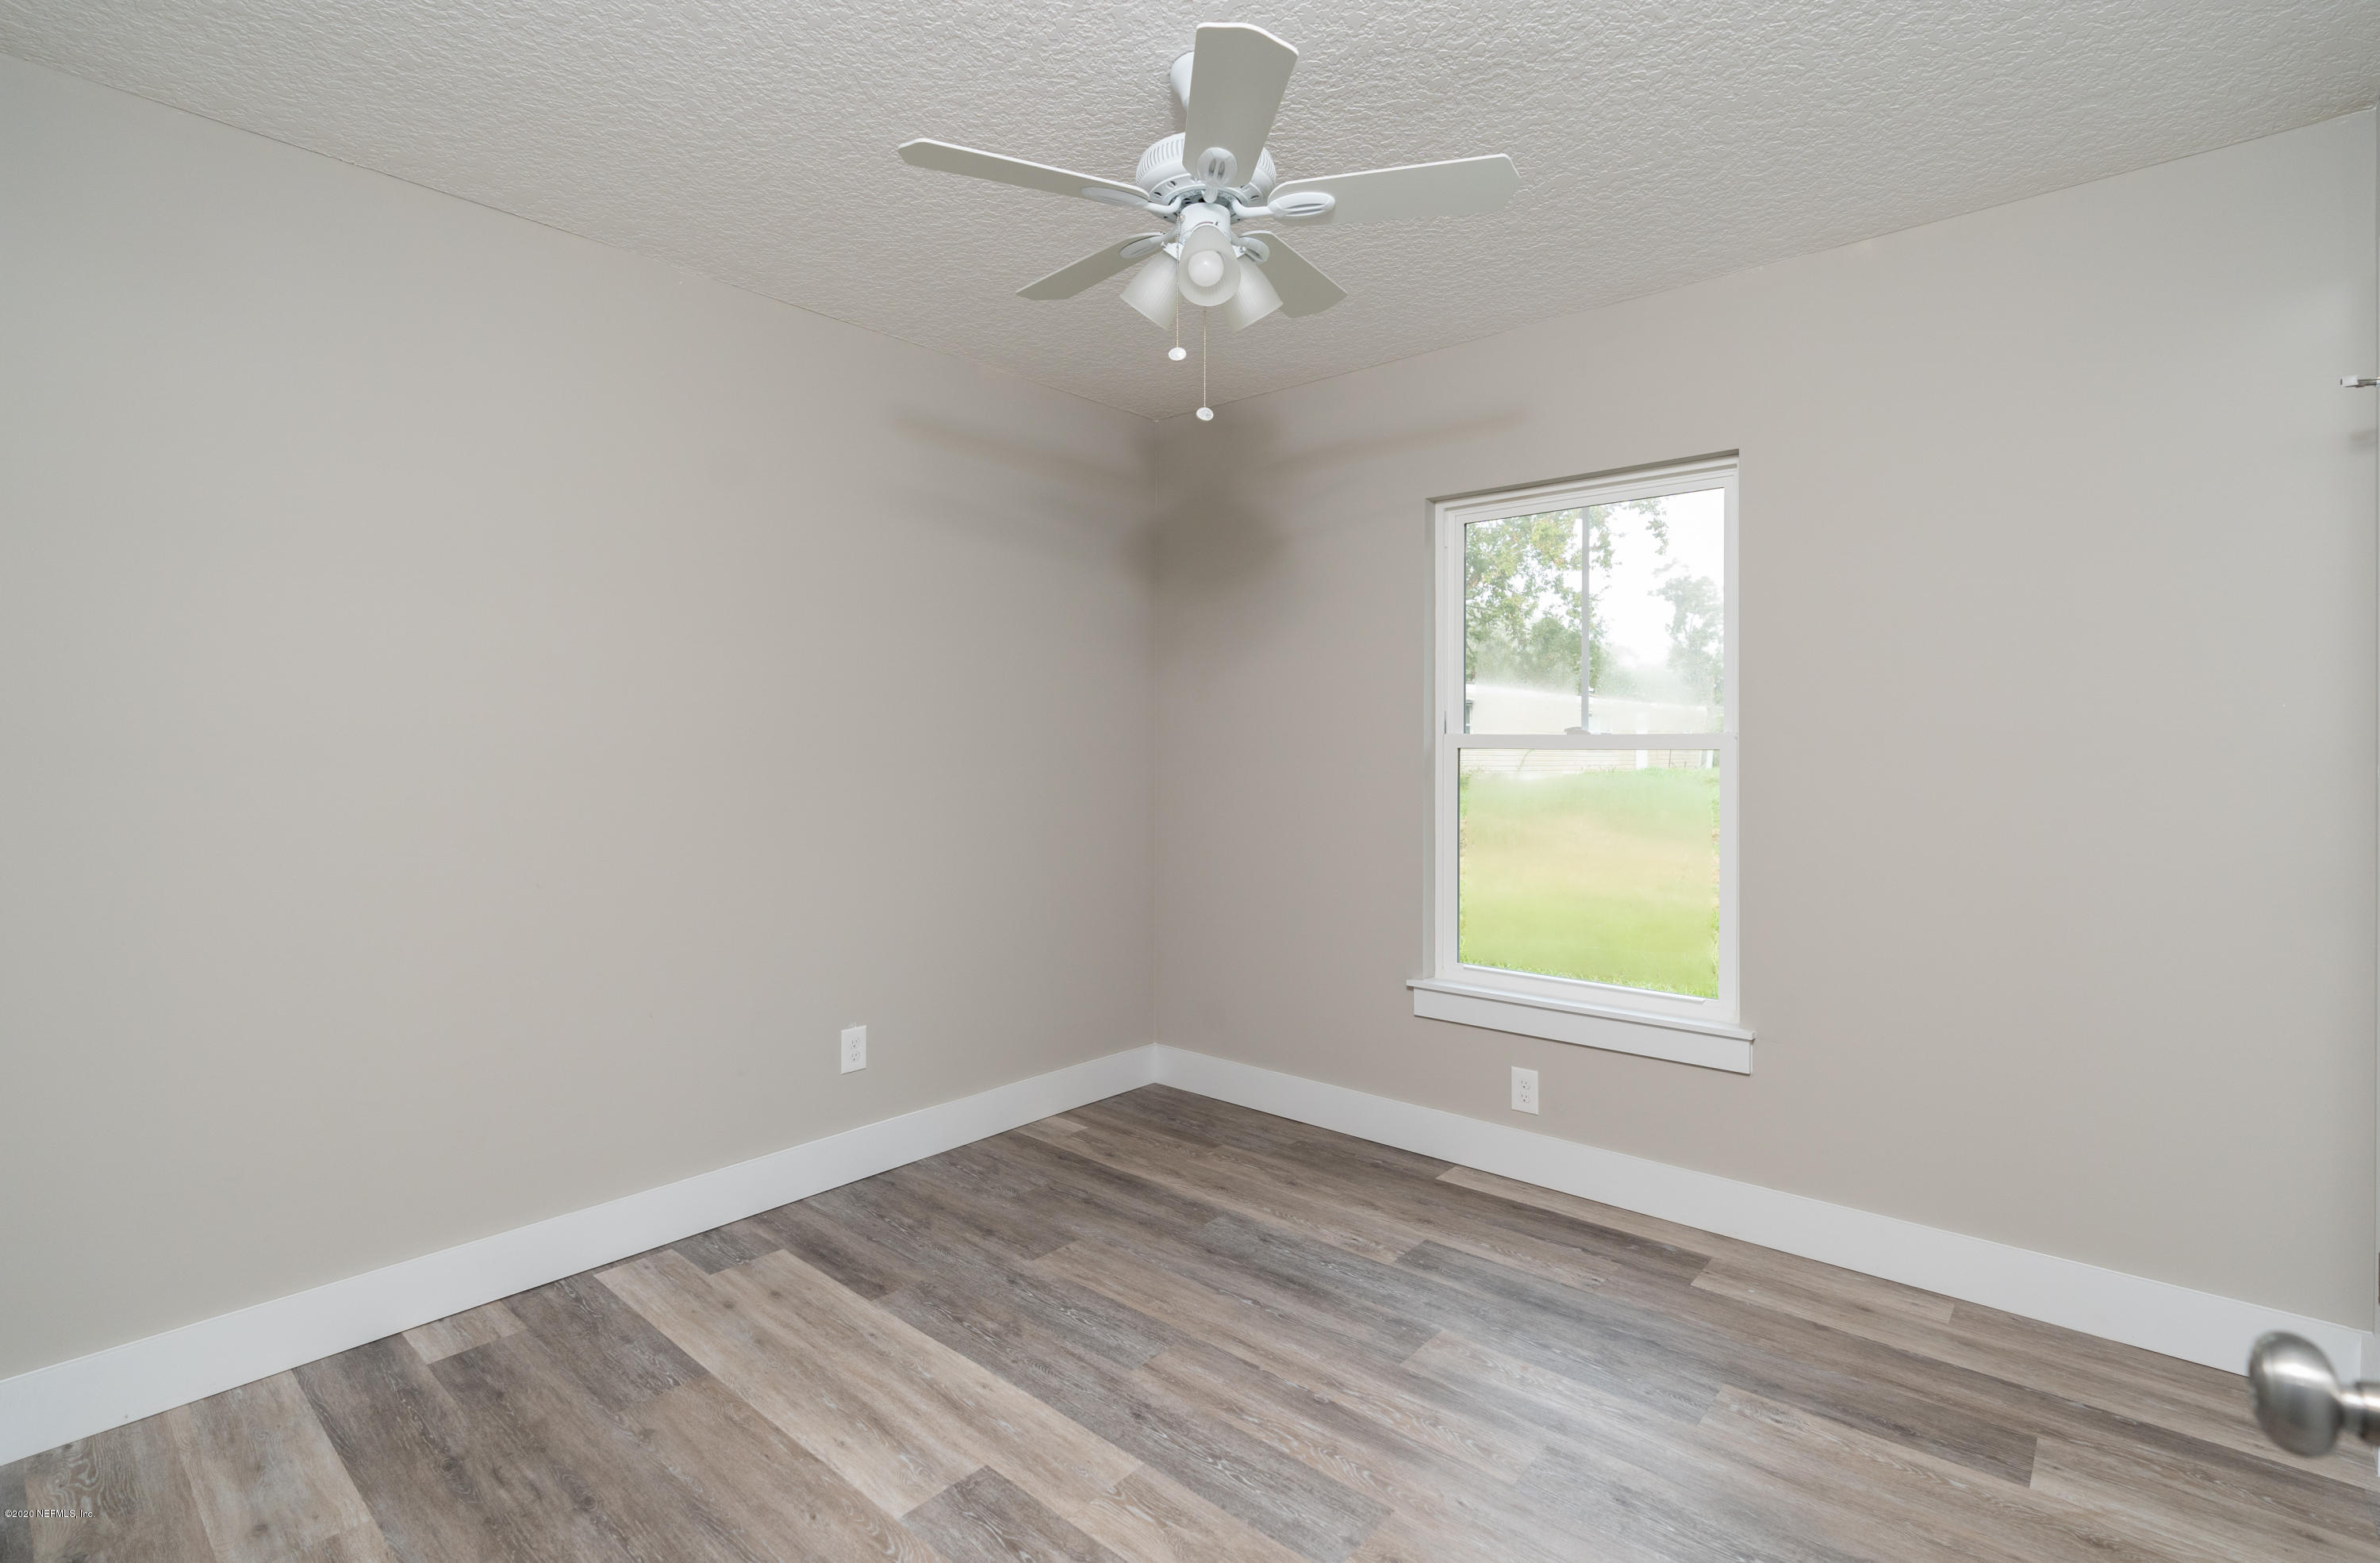 2855 EIGHTH, ST AUGUSTINE, FLORIDA 32084, 3 Bedrooms Bedrooms, ,2 BathroomsBathrooms,Residential,For sale,EIGHTH,1051770